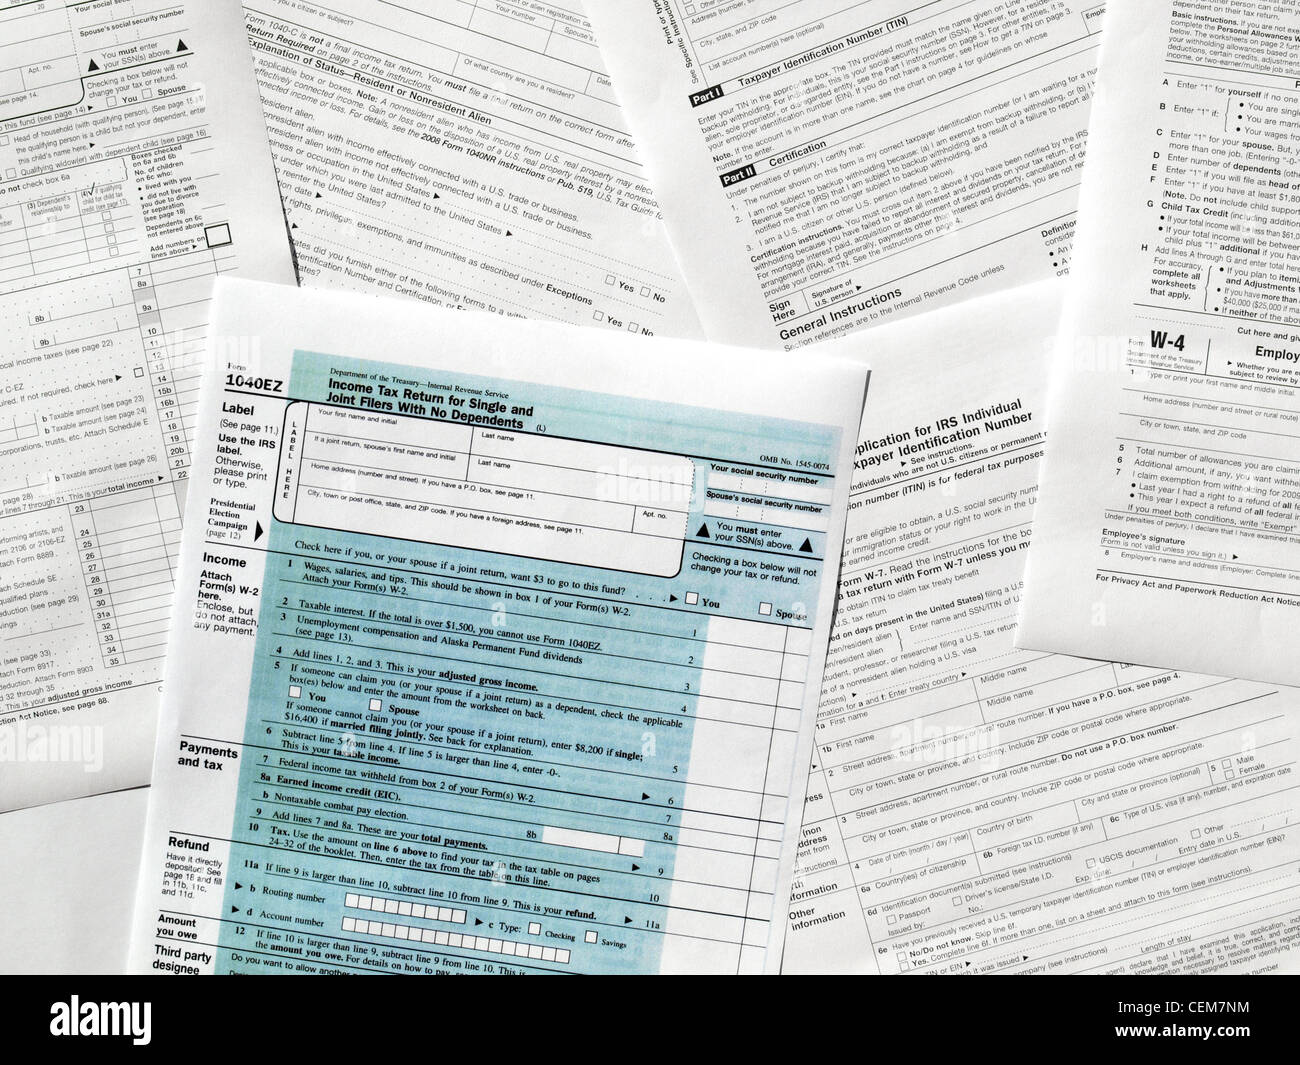 Blank Tax Form Stock Photos & Blank Tax Form Stock Images - Alamy